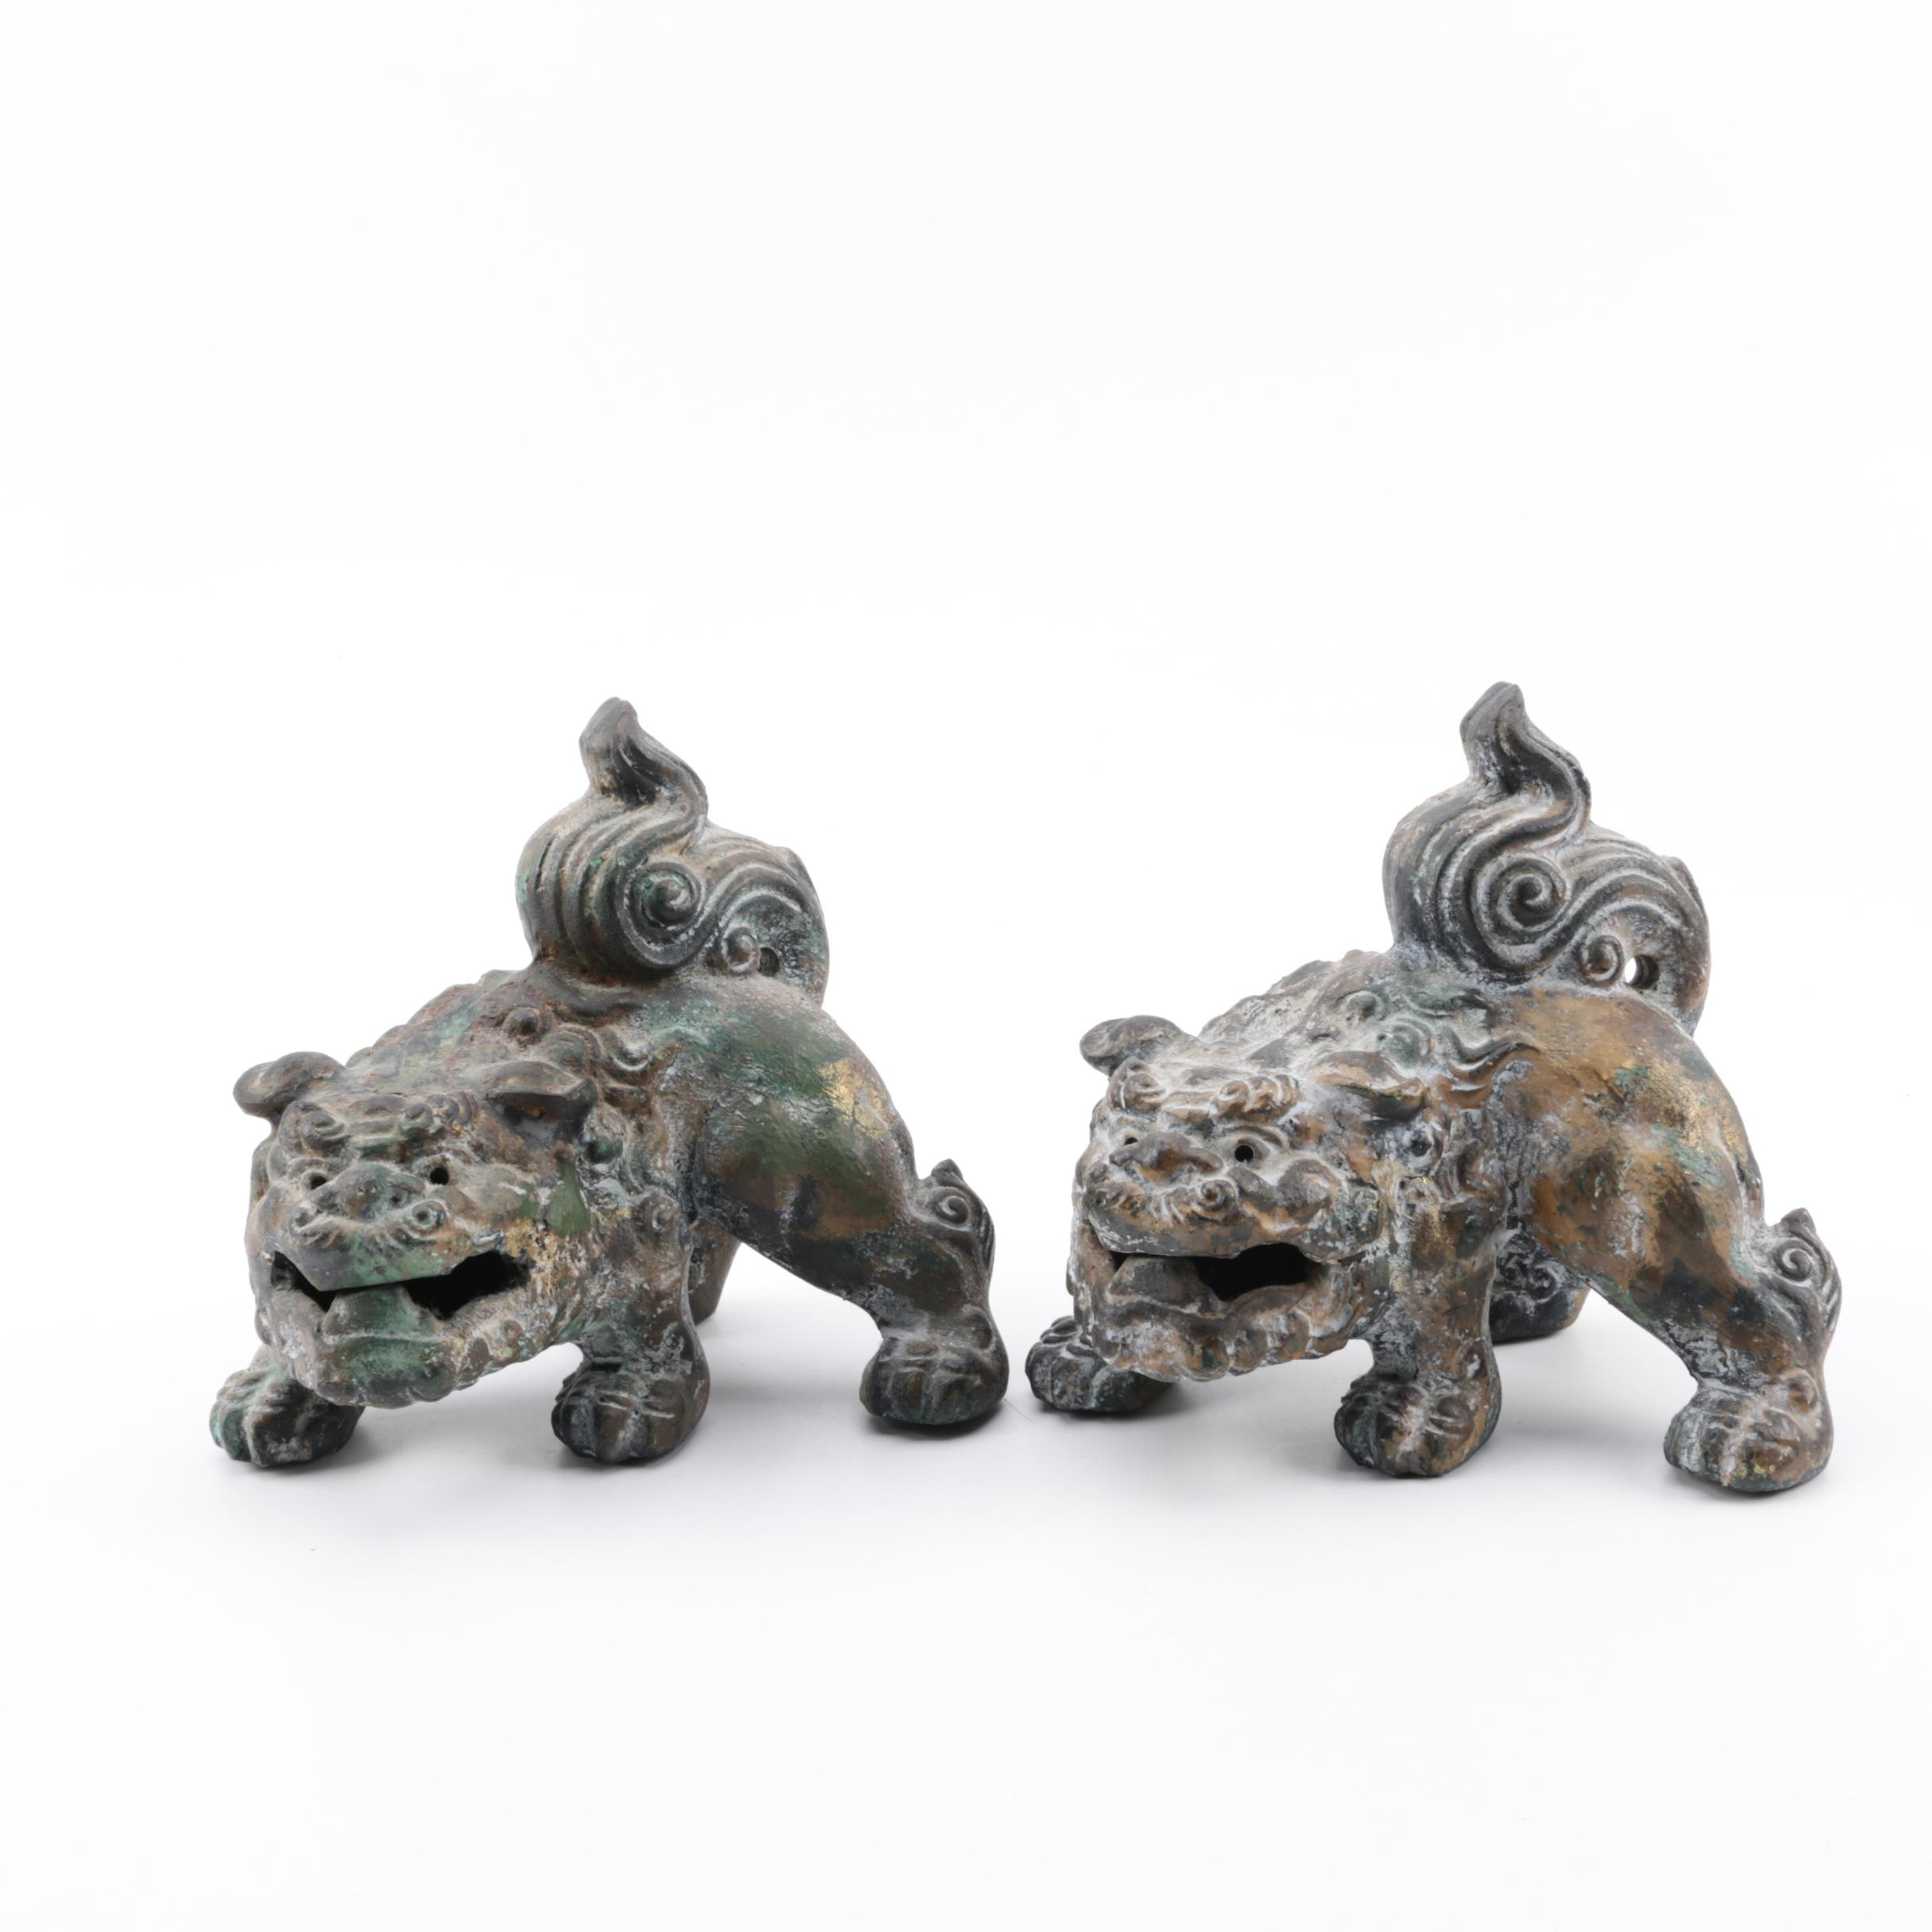 Japanese Komainu Metal Figures